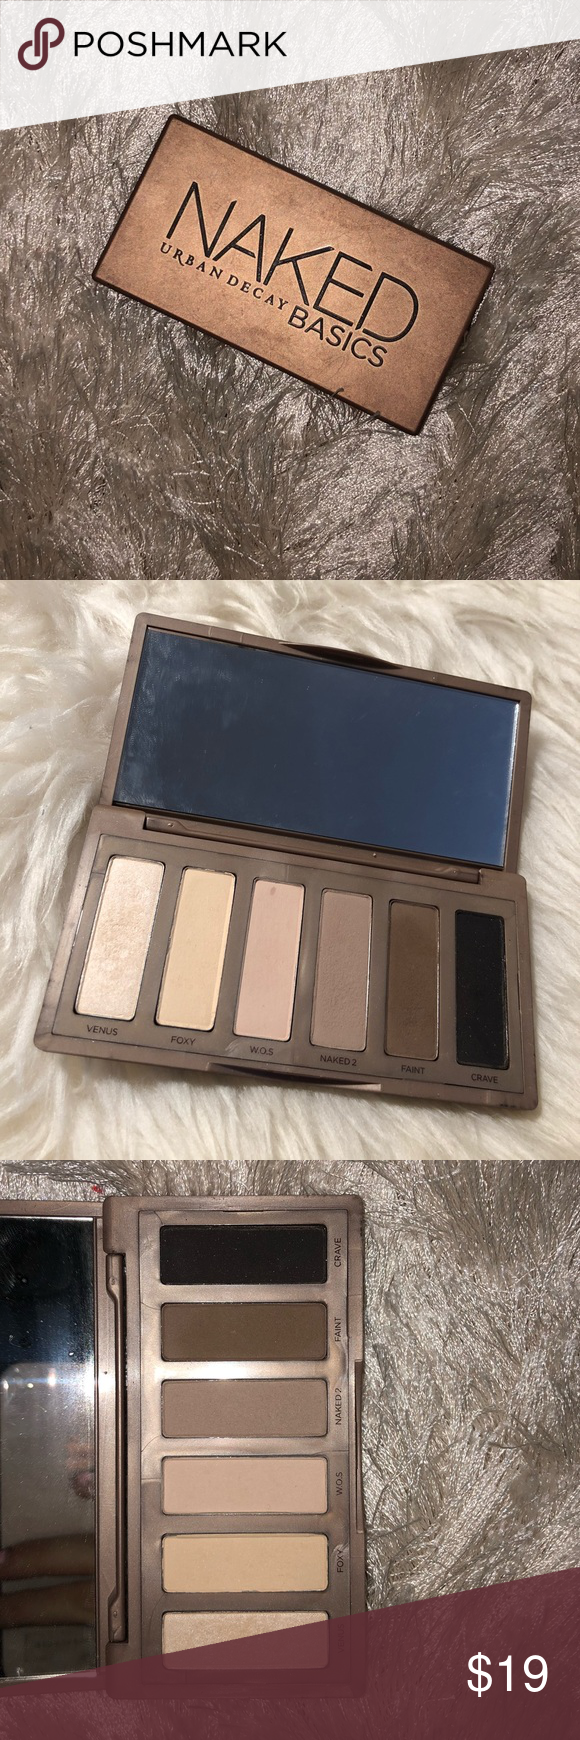 Urban Decay Naked Basics Palette Lightly used eyeshadow palette! Very pretty neutral eyeshadow tones! Good for everyday looks. Urban Decay Makeup Eyeshadow